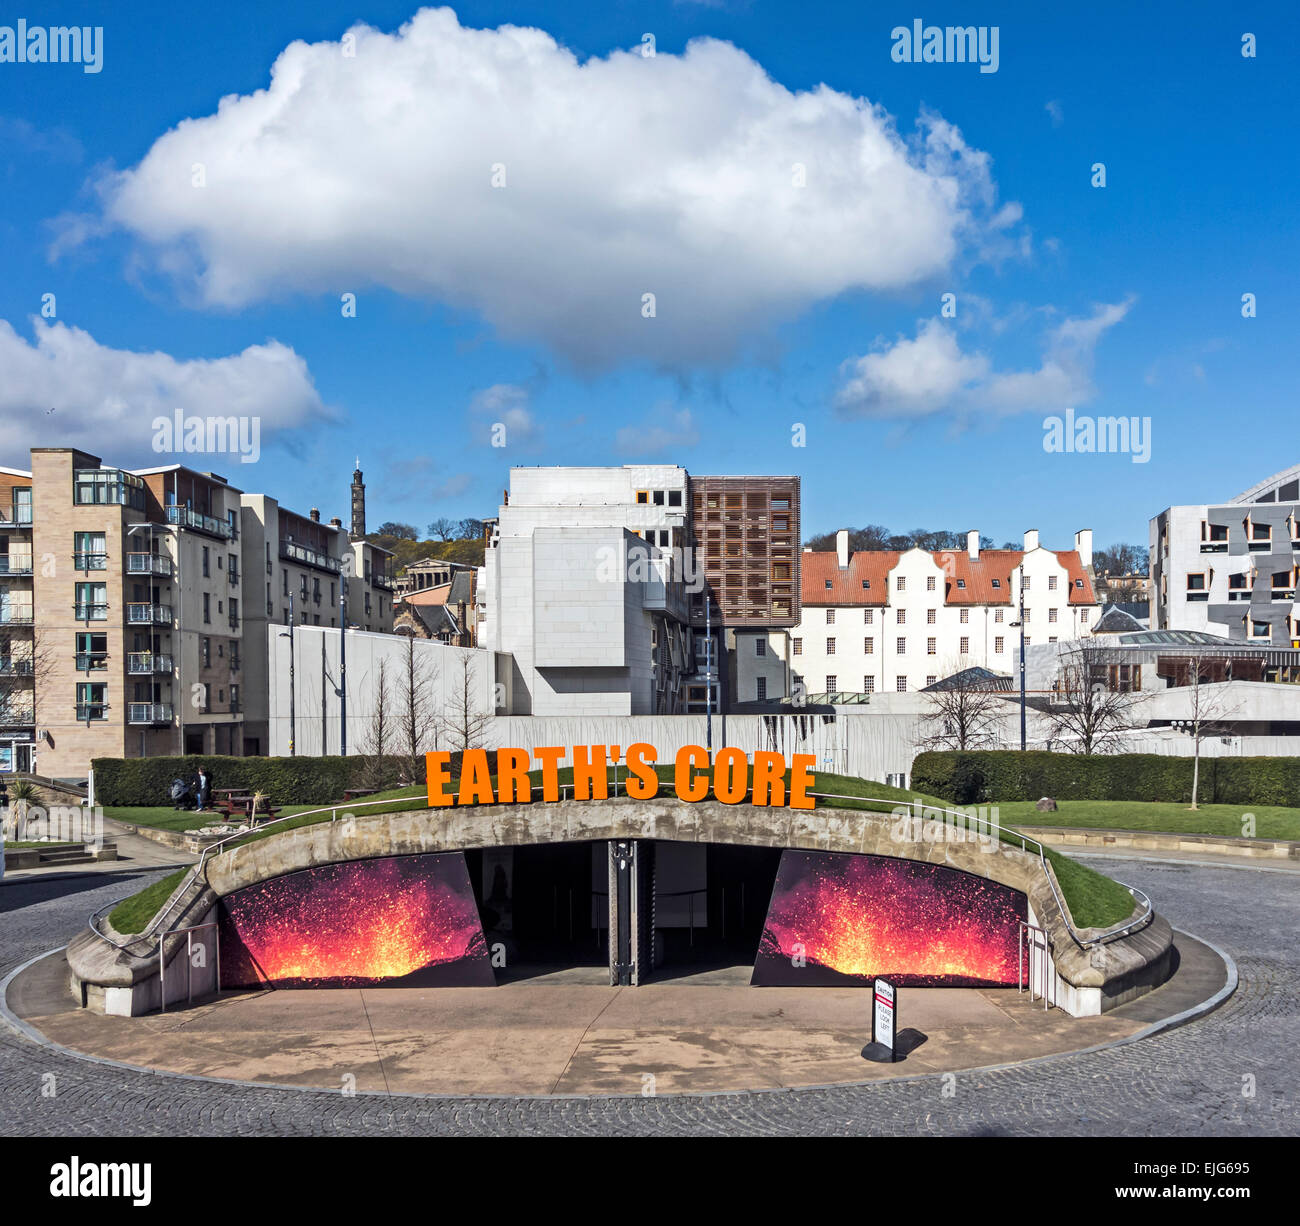 Entrance to Earth's Core at Our Dynamic Earth Edinburgh Scotland with The Scottish Parliament behind. - Stock Image